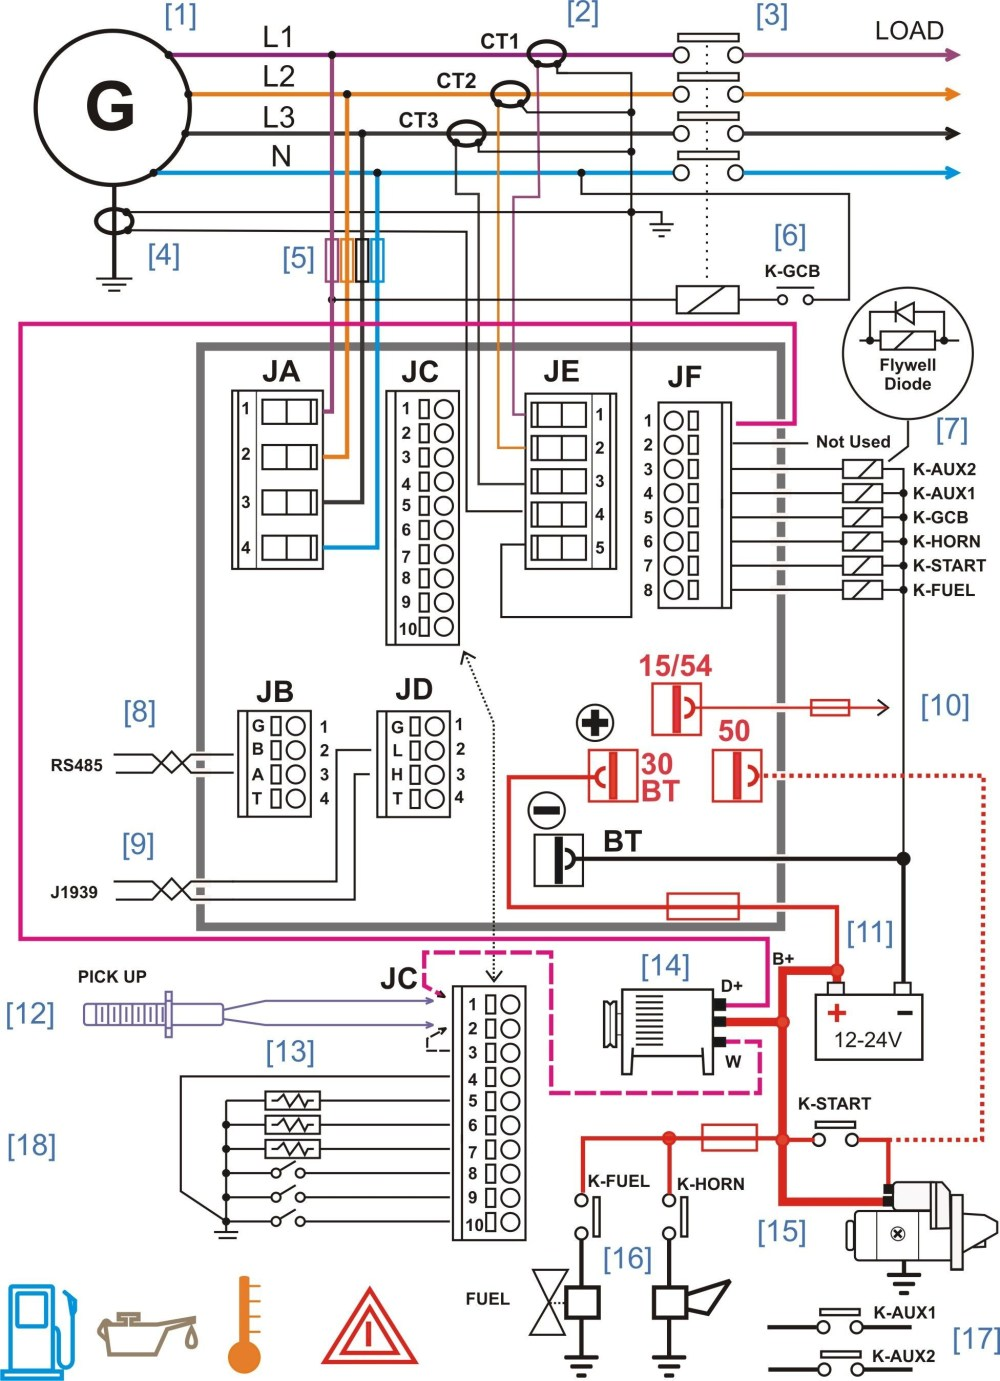 medium resolution of sump pump control panel wiring diagram wiring diagrams konsult submersible pump panel wiring diagram pump panel wiring diagram